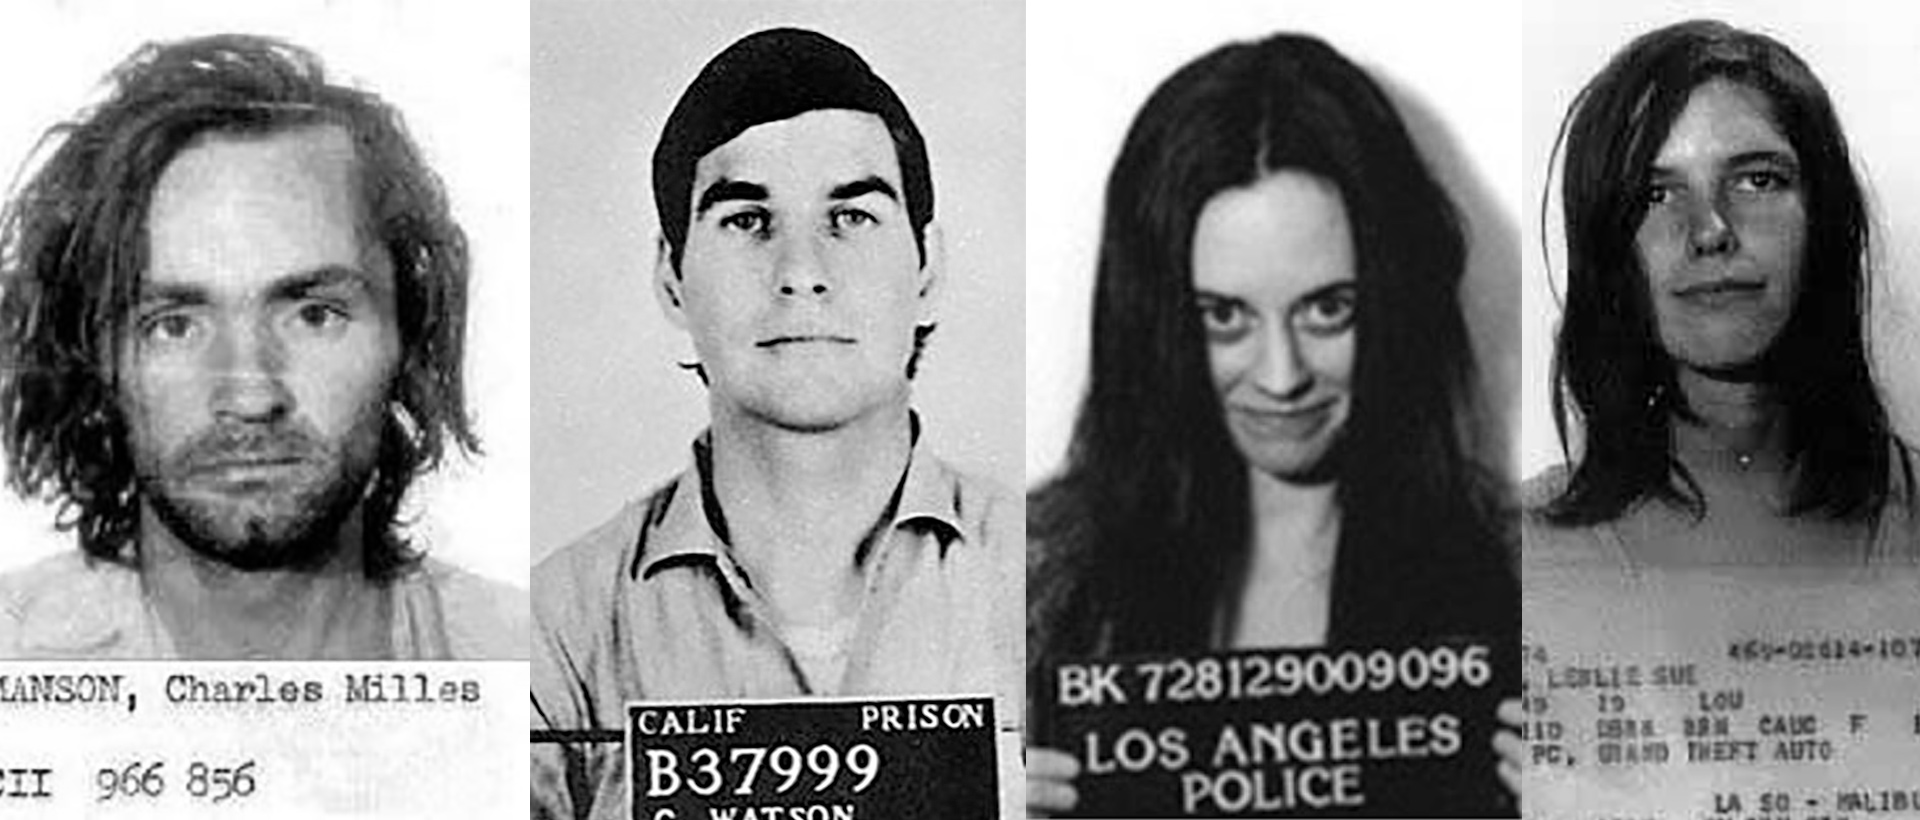 9 Things You Should Know About the Manson Family Cult